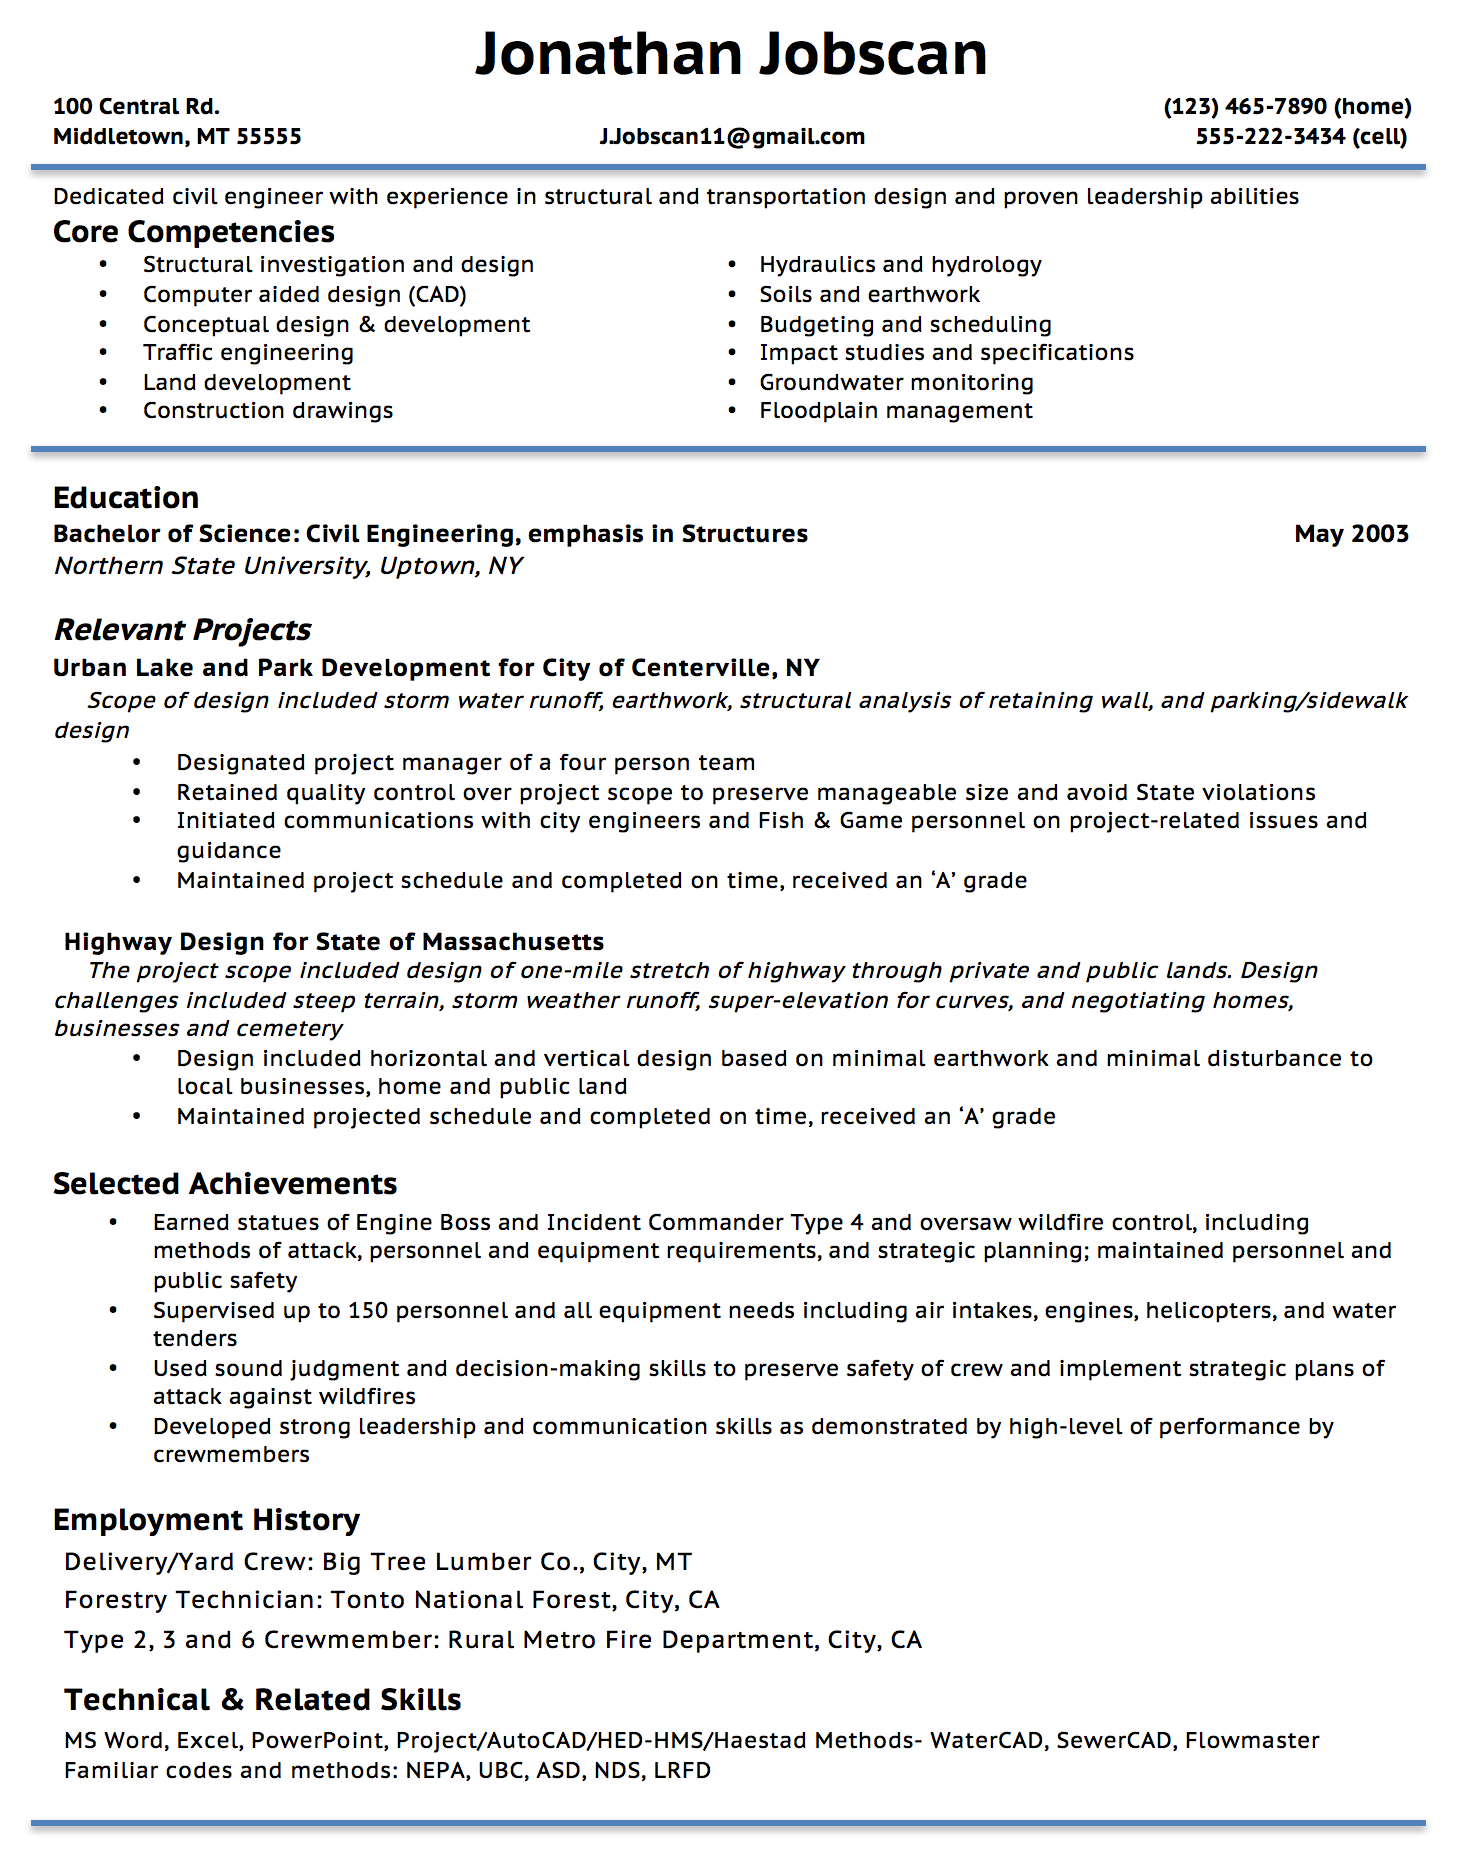 Opposenewapstandardsus  Marvelous Resume Writing Guide  Jobscan With Excellent Example Of A Functional Resume Format With Enchanting Cover Letter And Resume Template Also What To Put On A Resume For Skills In Addition Beginner Resume And Entry Level Sales Resume As Well As How To Make A Resume In Word Additionally Resume Draft From Jobscanco With Opposenewapstandardsus  Excellent Resume Writing Guide  Jobscan With Enchanting Example Of A Functional Resume Format And Marvelous Cover Letter And Resume Template Also What To Put On A Resume For Skills In Addition Beginner Resume From Jobscanco